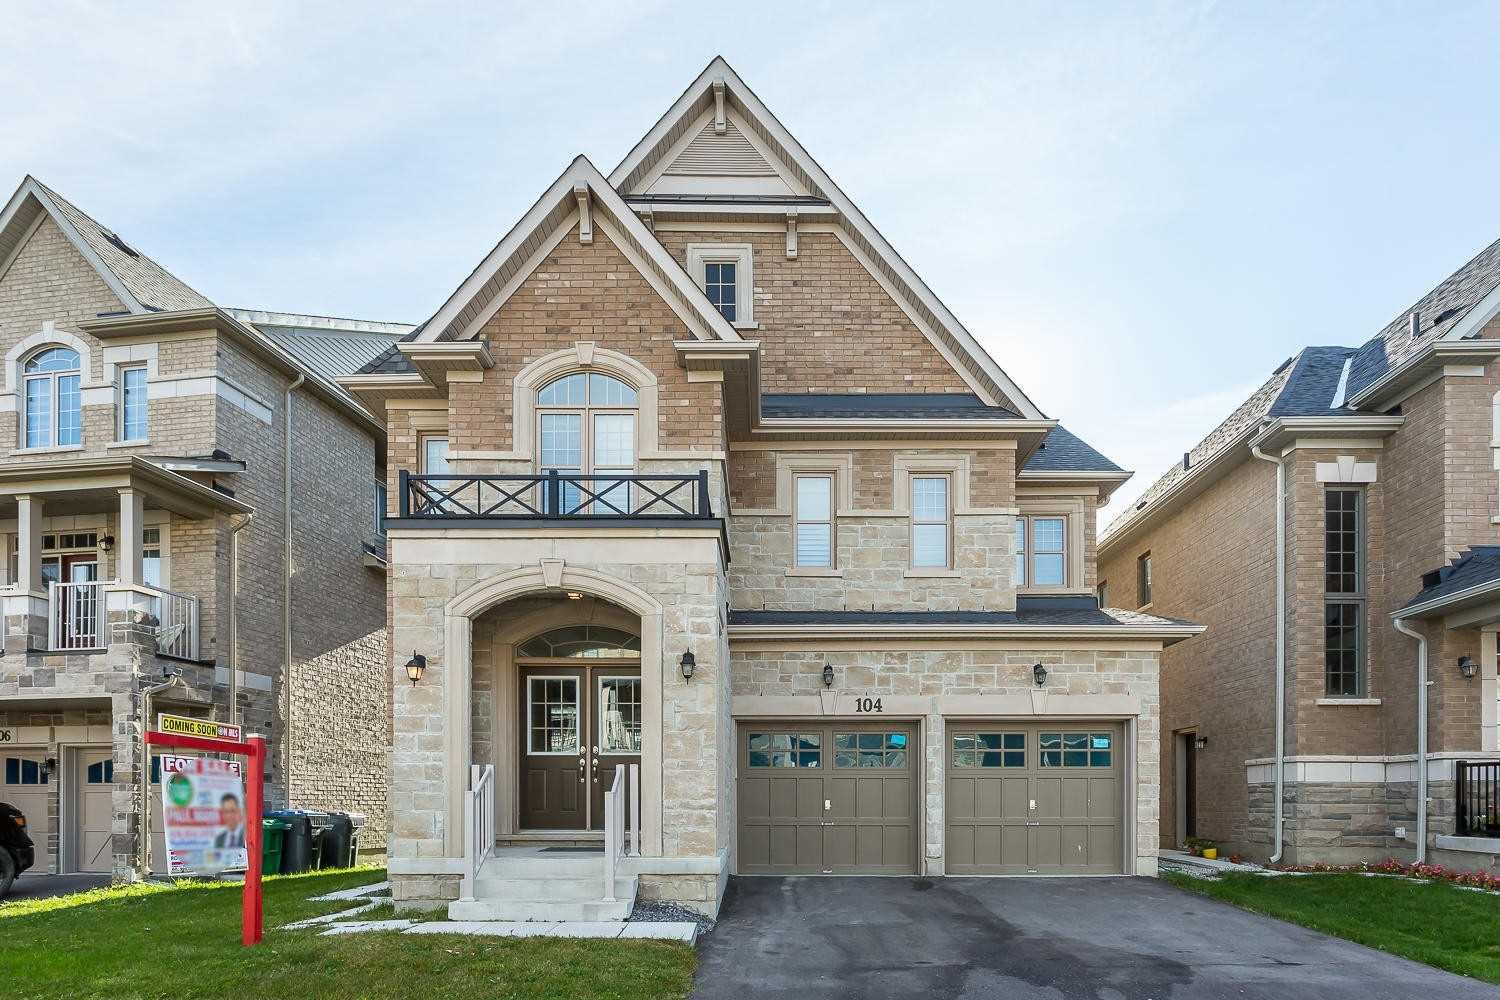 Main Photo: 104 Roulette Crescent in Brampton: Northwest Brampton House (2-Storey) for sale : MLS®# W4623313